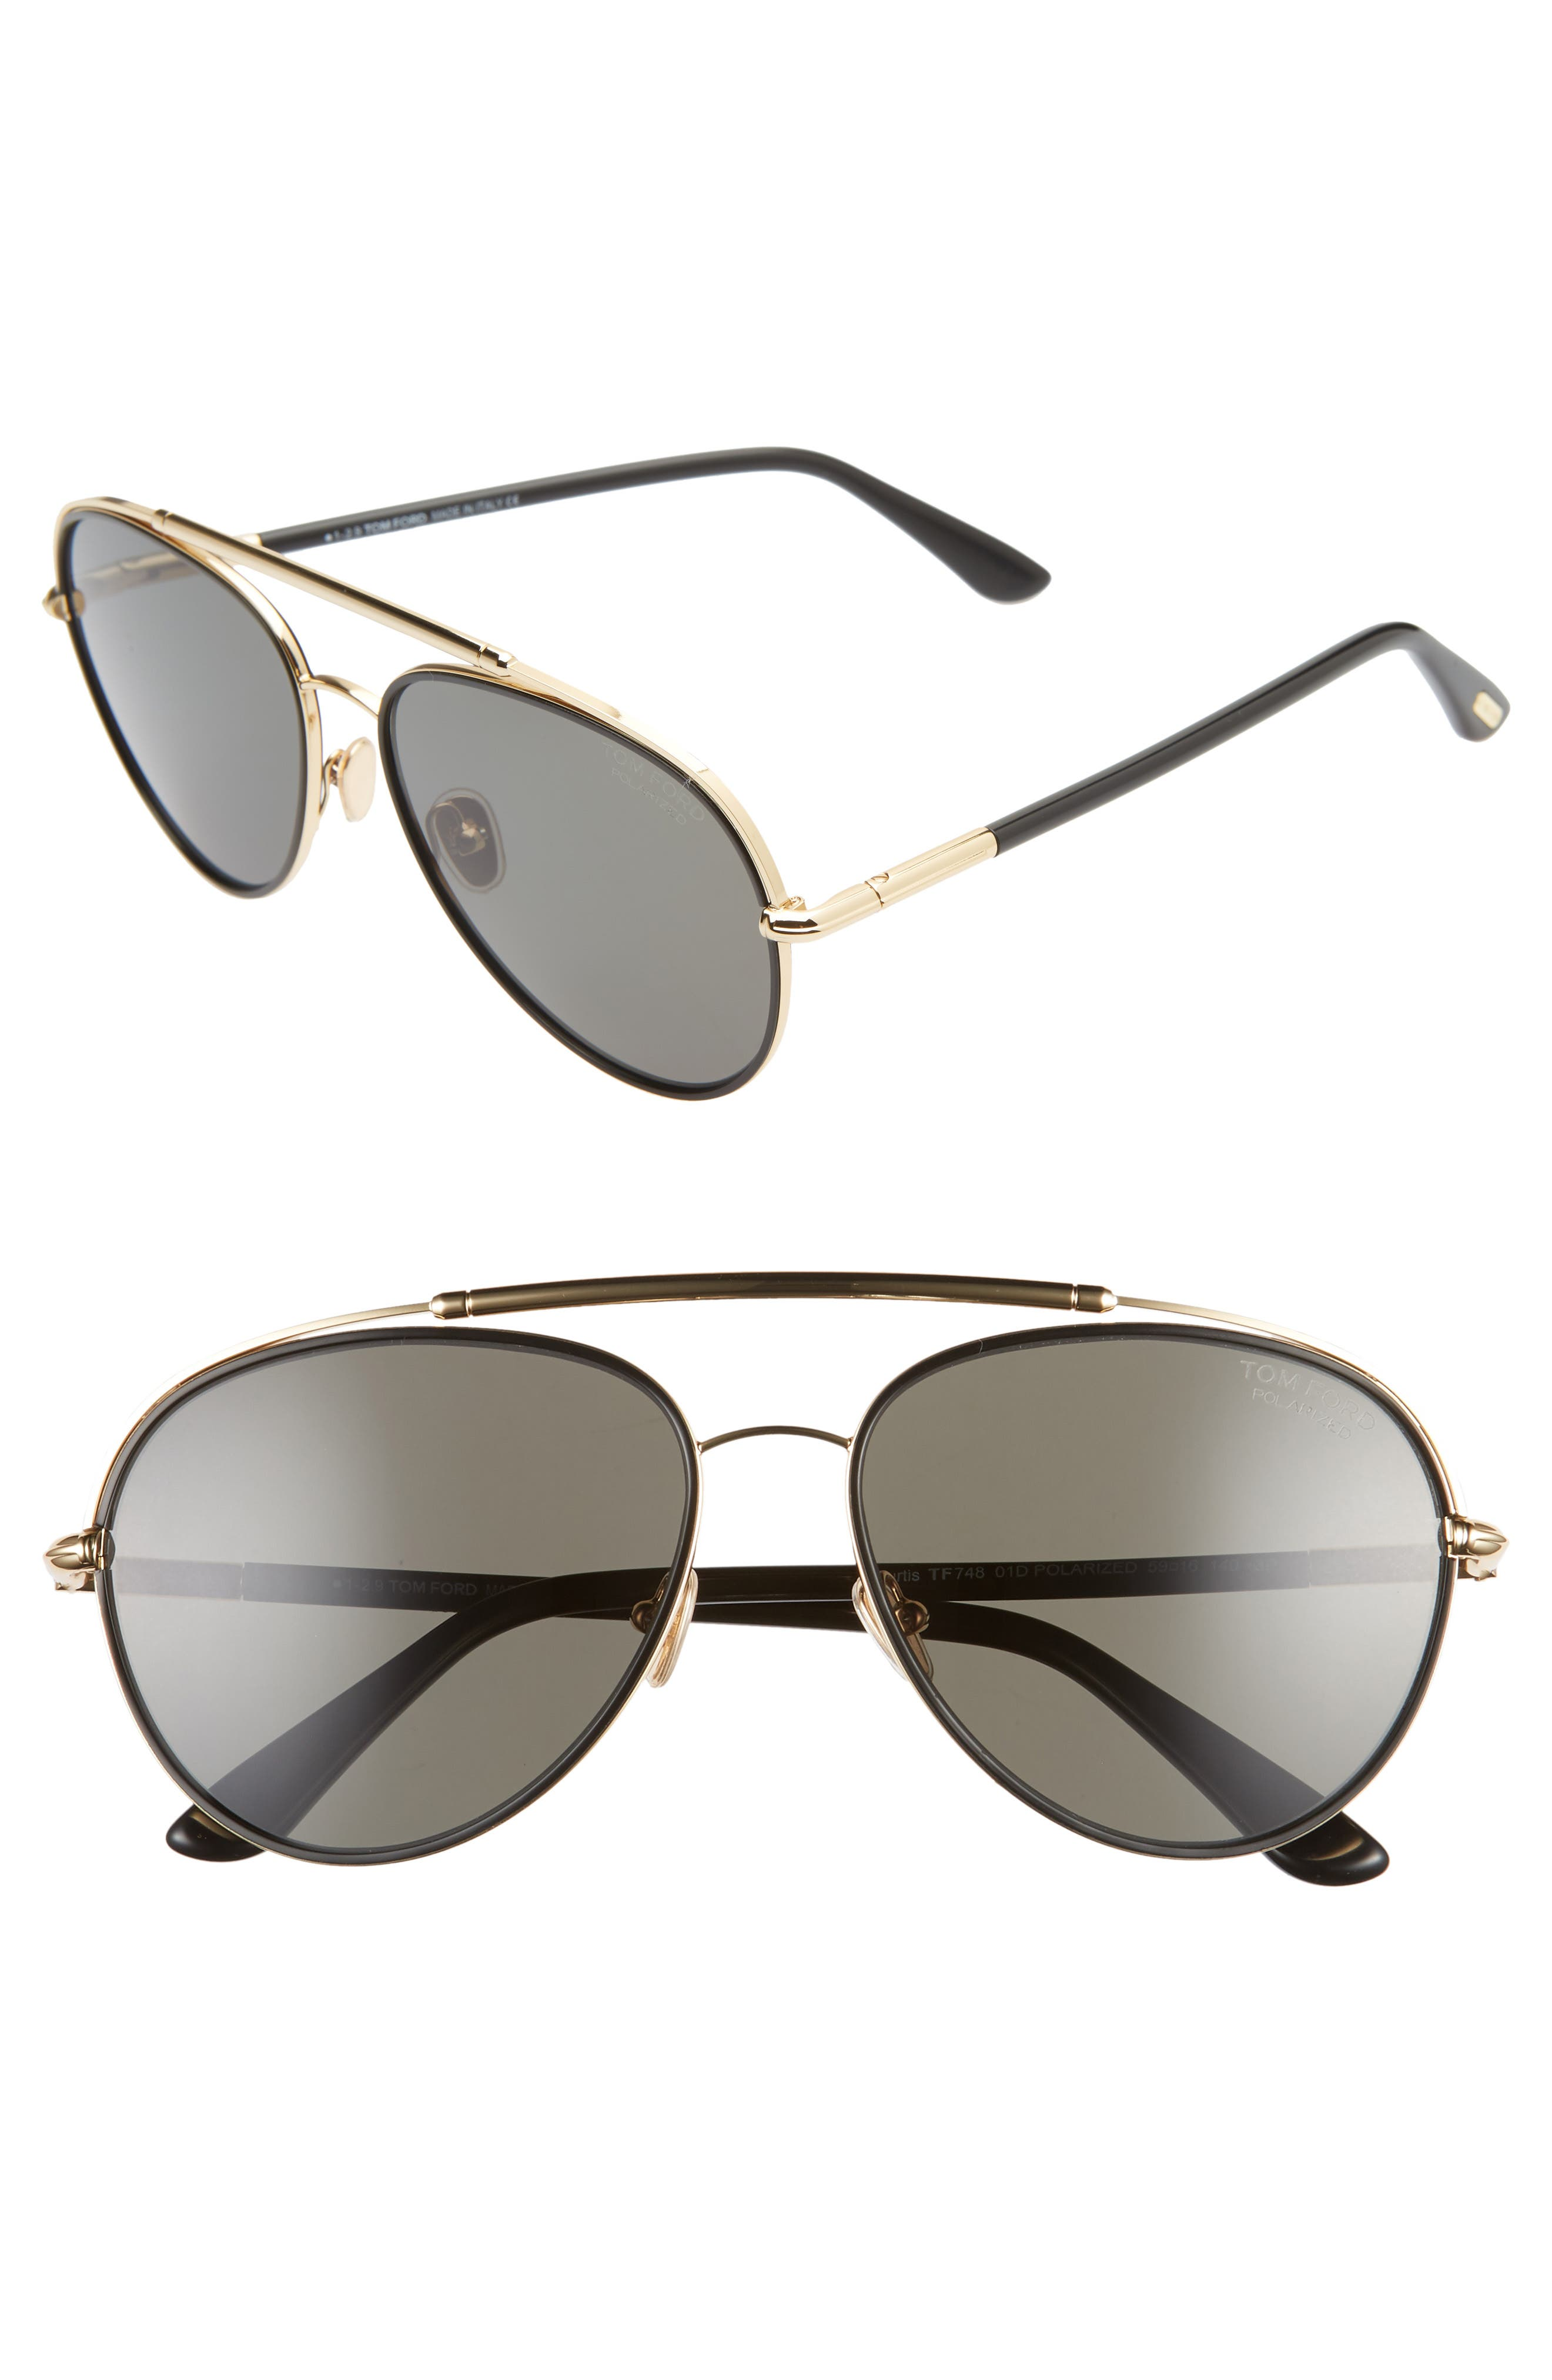 Image of Tom Ford Curtis 59mm Polarized Aviator Sunglasses